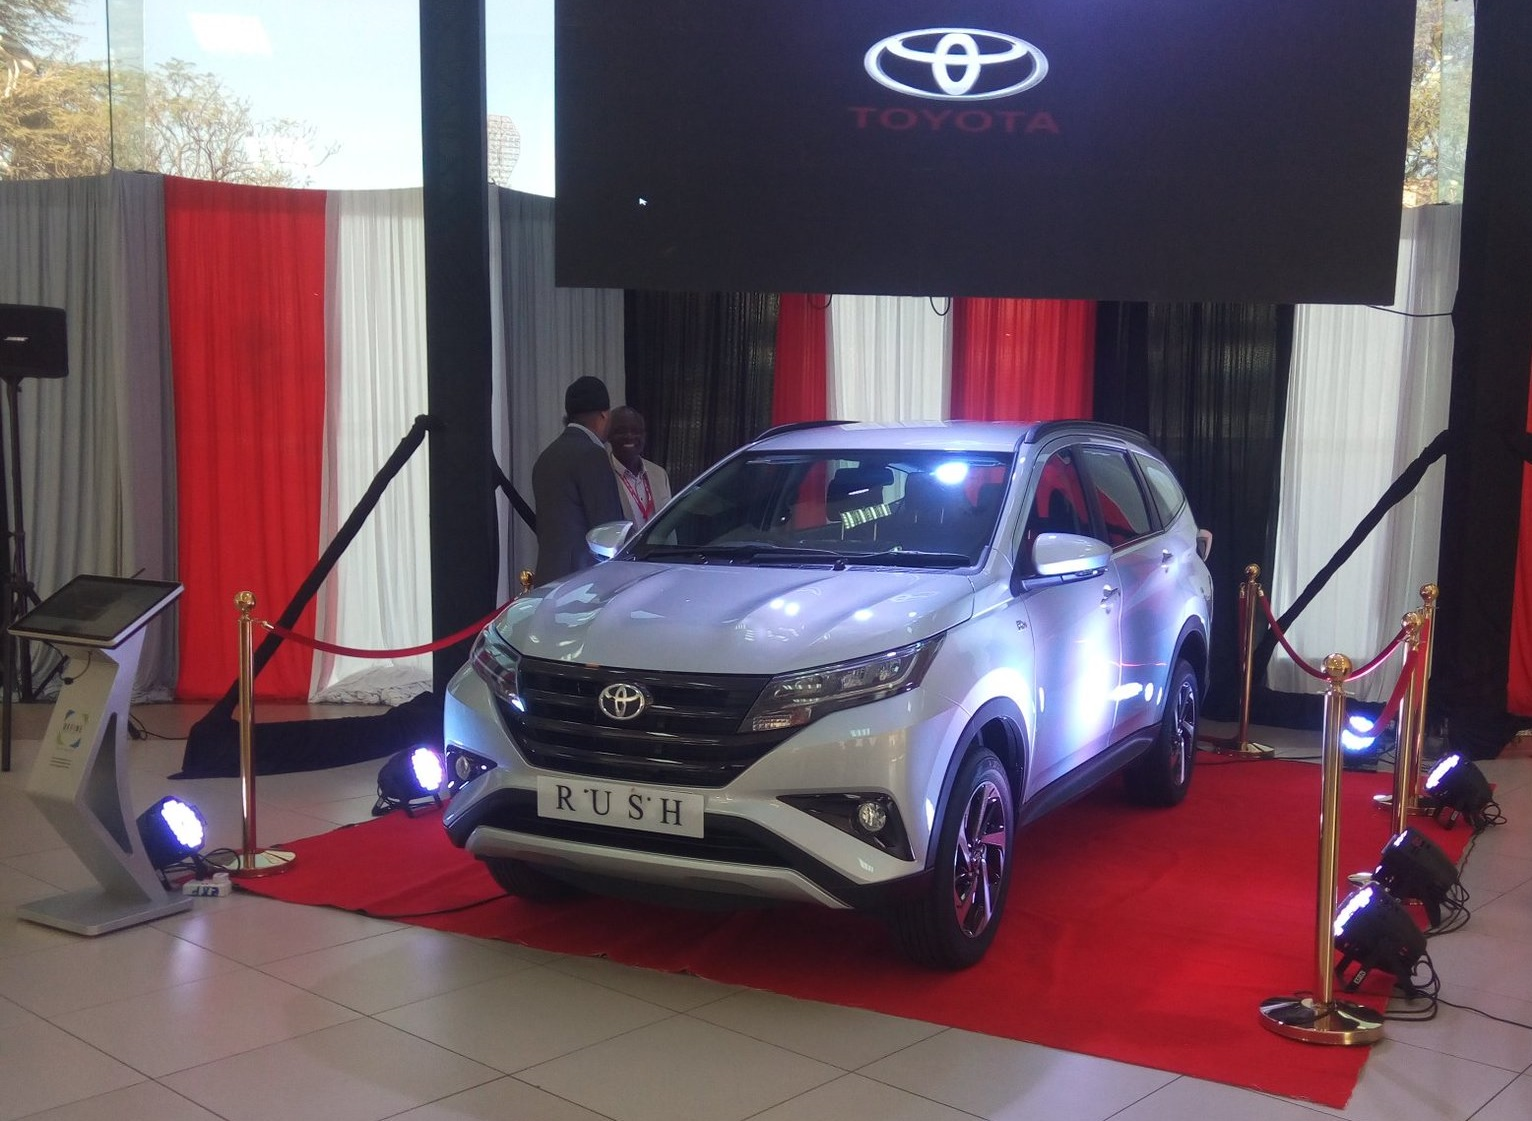 Toyota Rush 2018 Review 7-Seater costs Sh 3M